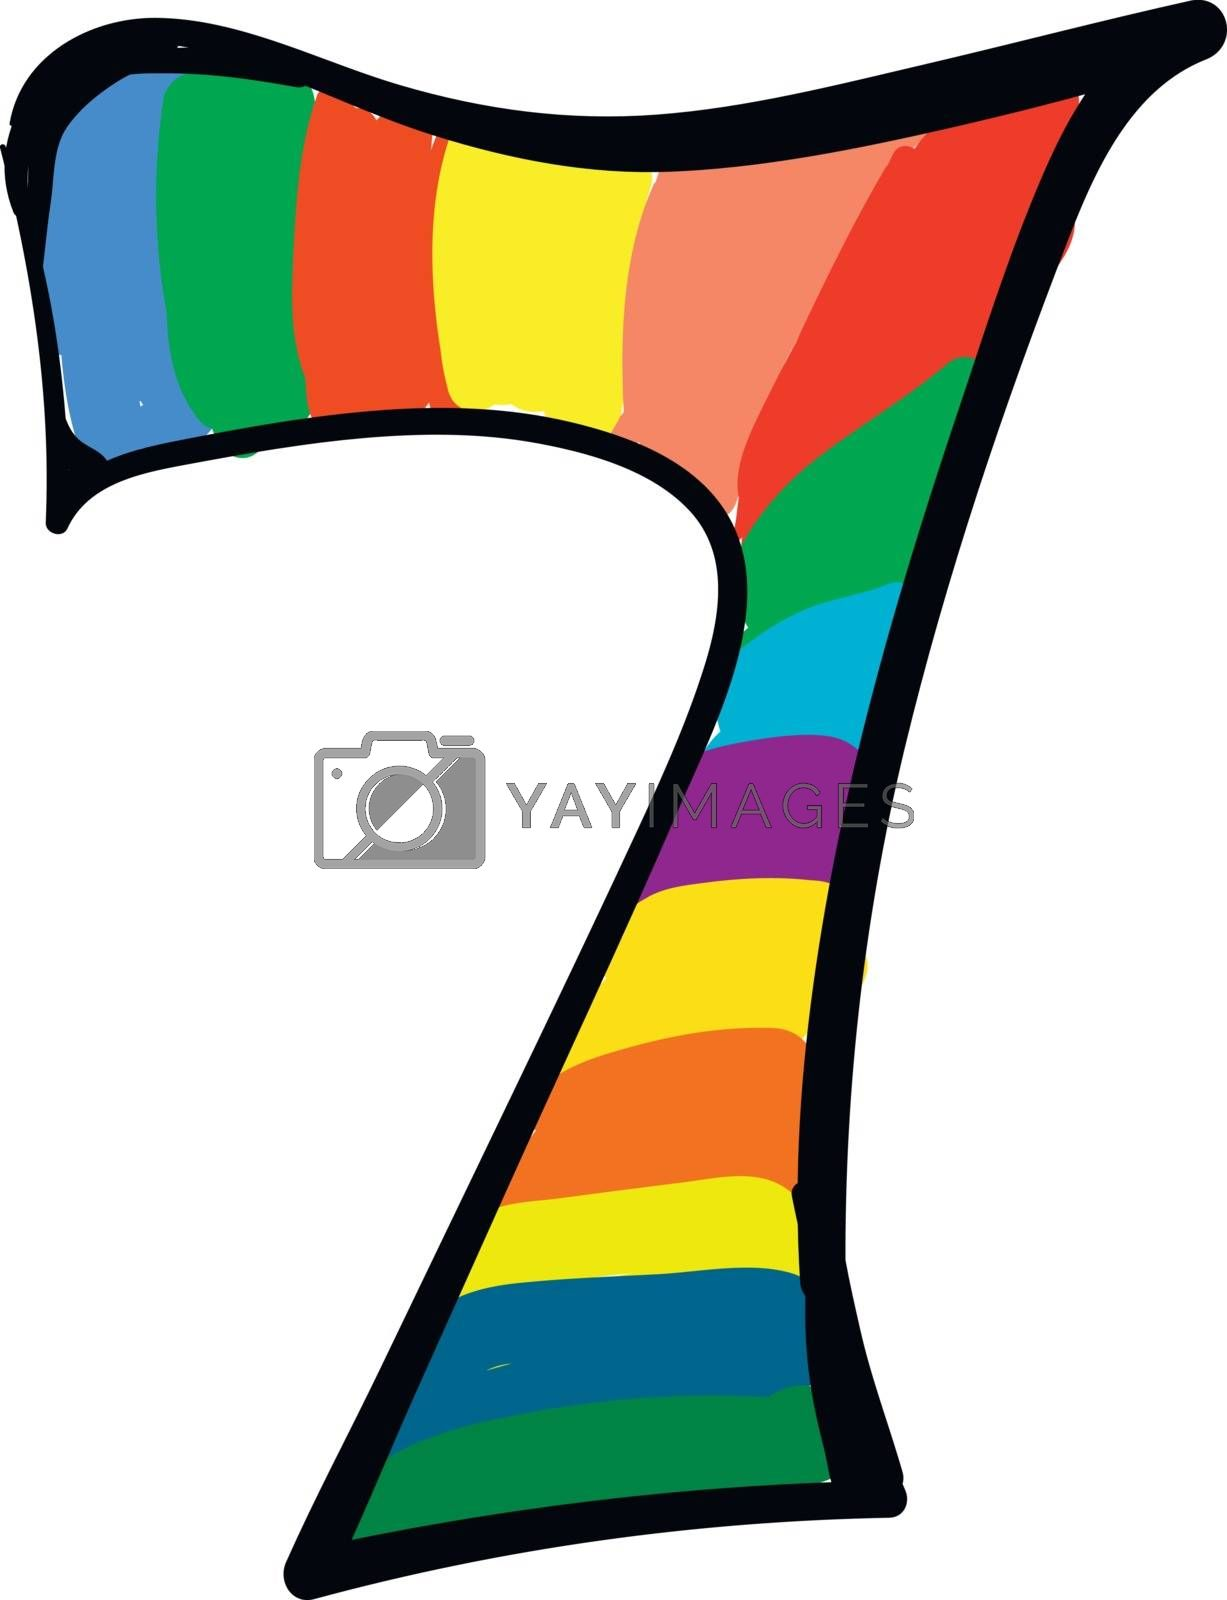 Royalty free image of Clipart of the numerical number seven or 7 in a range of multipl by Morphart